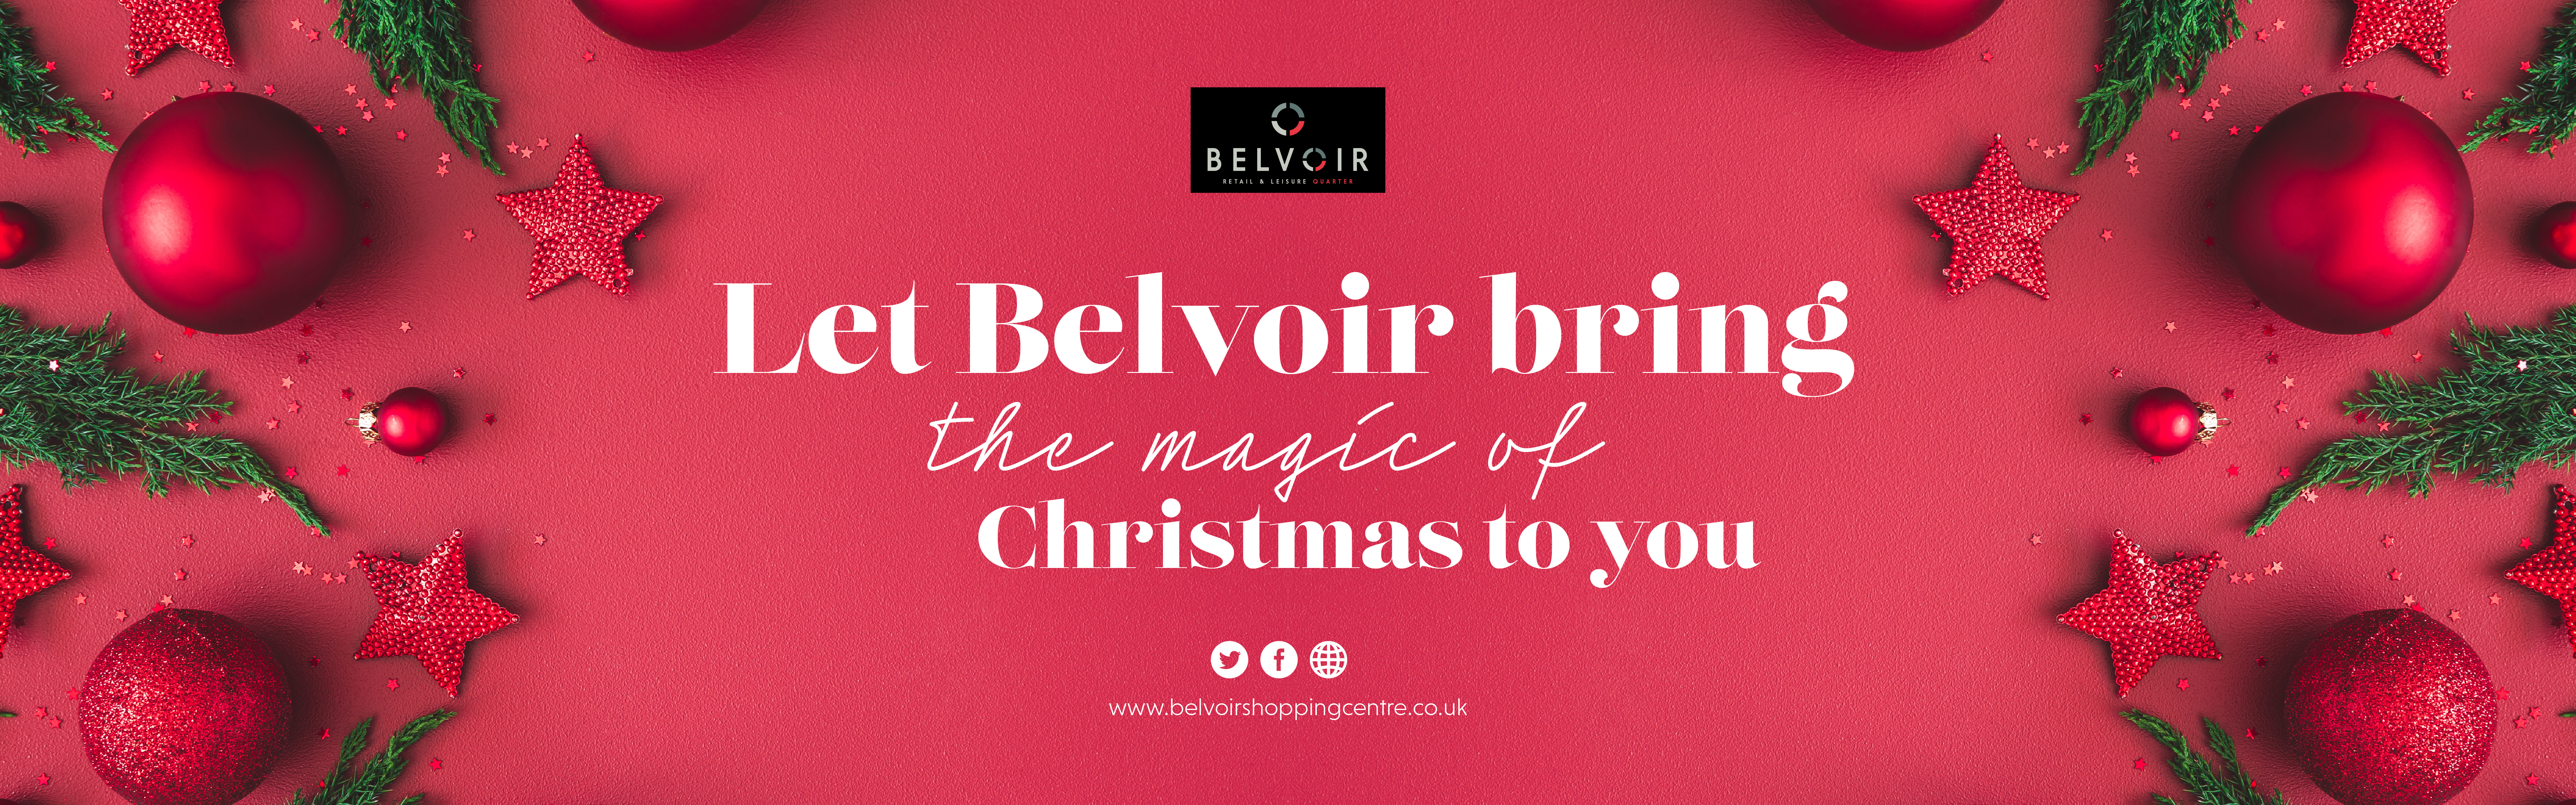 belvoir_xmas_web_A